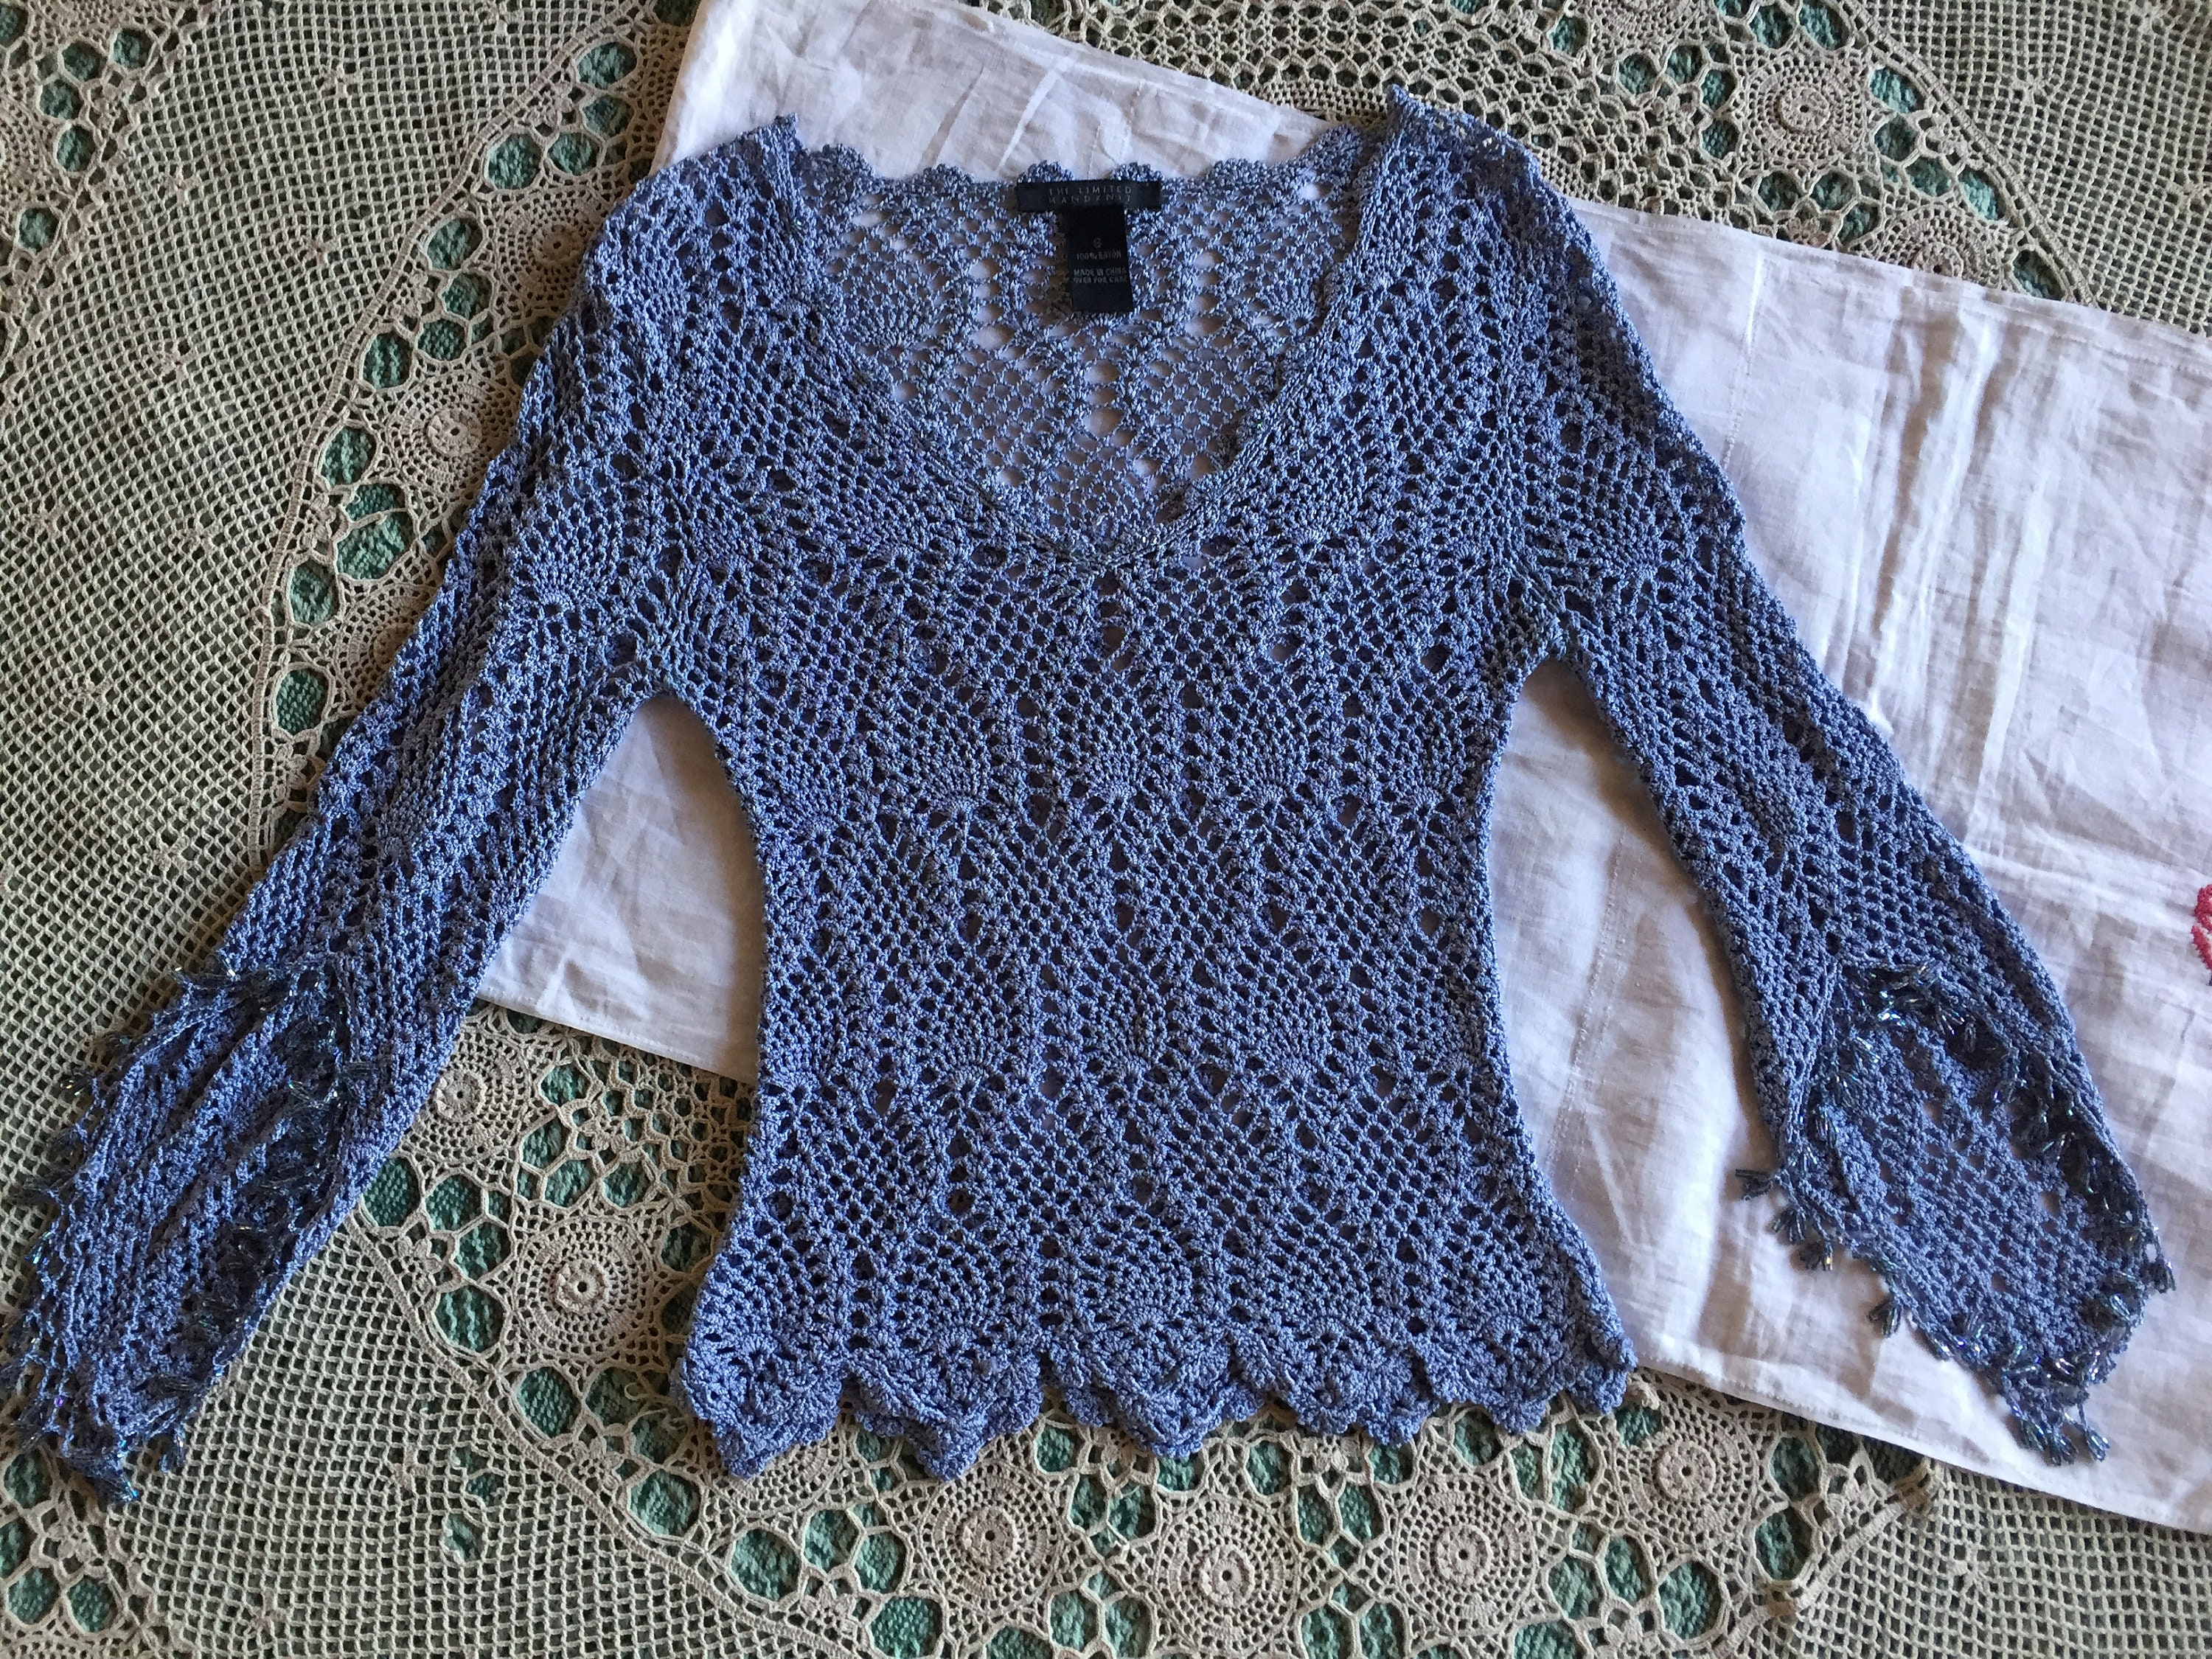 80s Sweatshirts, Sweaters, Vests | Women Vintage The Limited 1980S Hand Crochet Pullover Sweater in Stunning Ice Blue With Crystal Beads At Hem  Tapered Sleeves 100 Rayon $33.00 AT vintagedancer.com